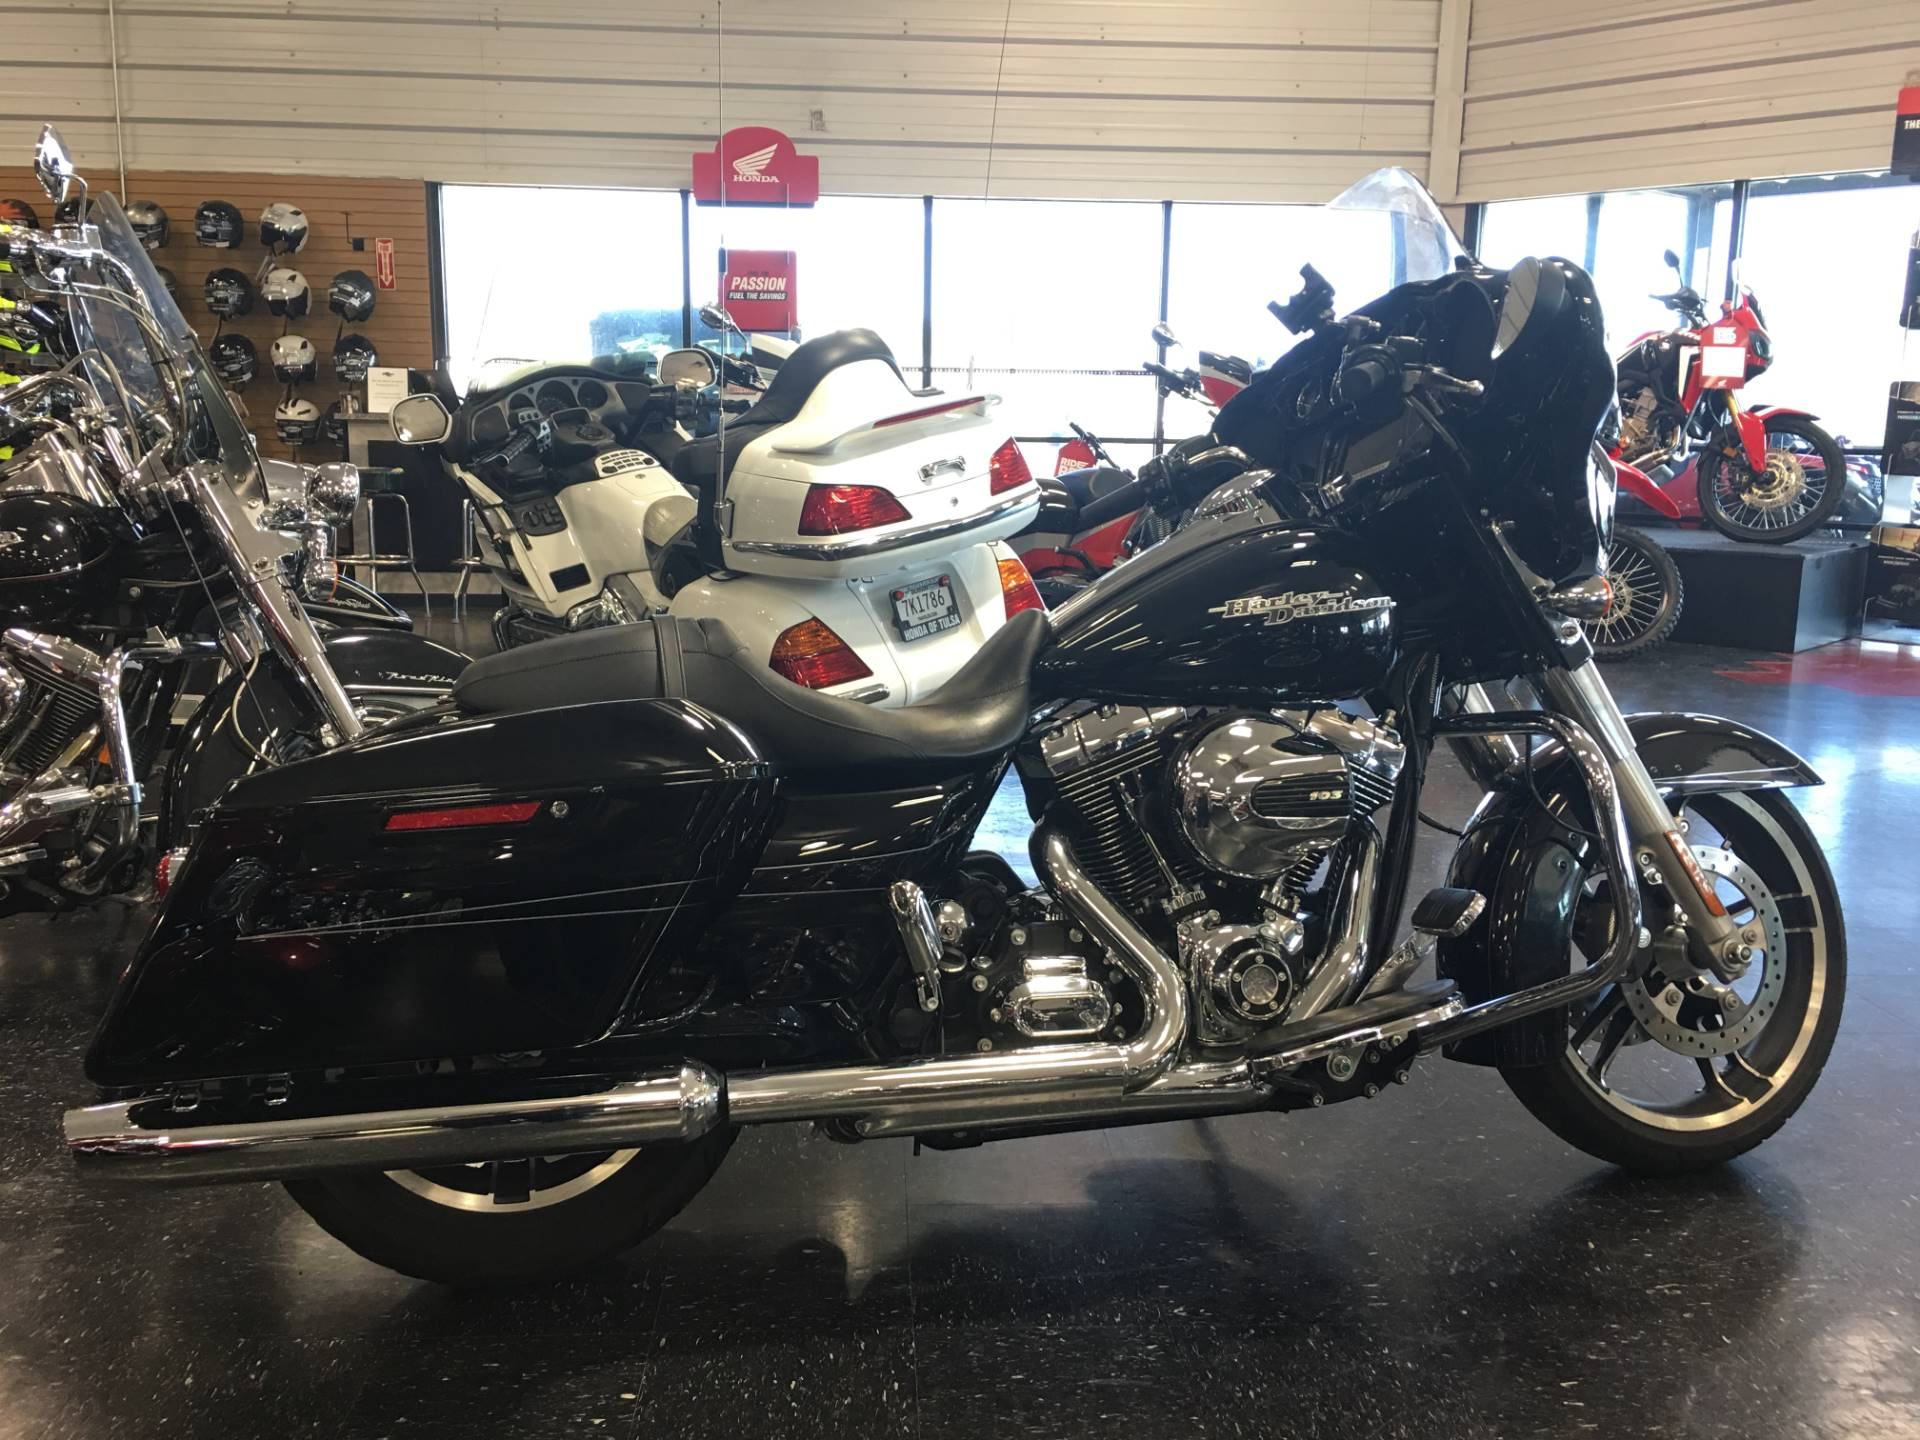 Used 2016 Harley-Davidson Street Glide® Special Motorcycles in Broken Arrow, OK Outside the ...